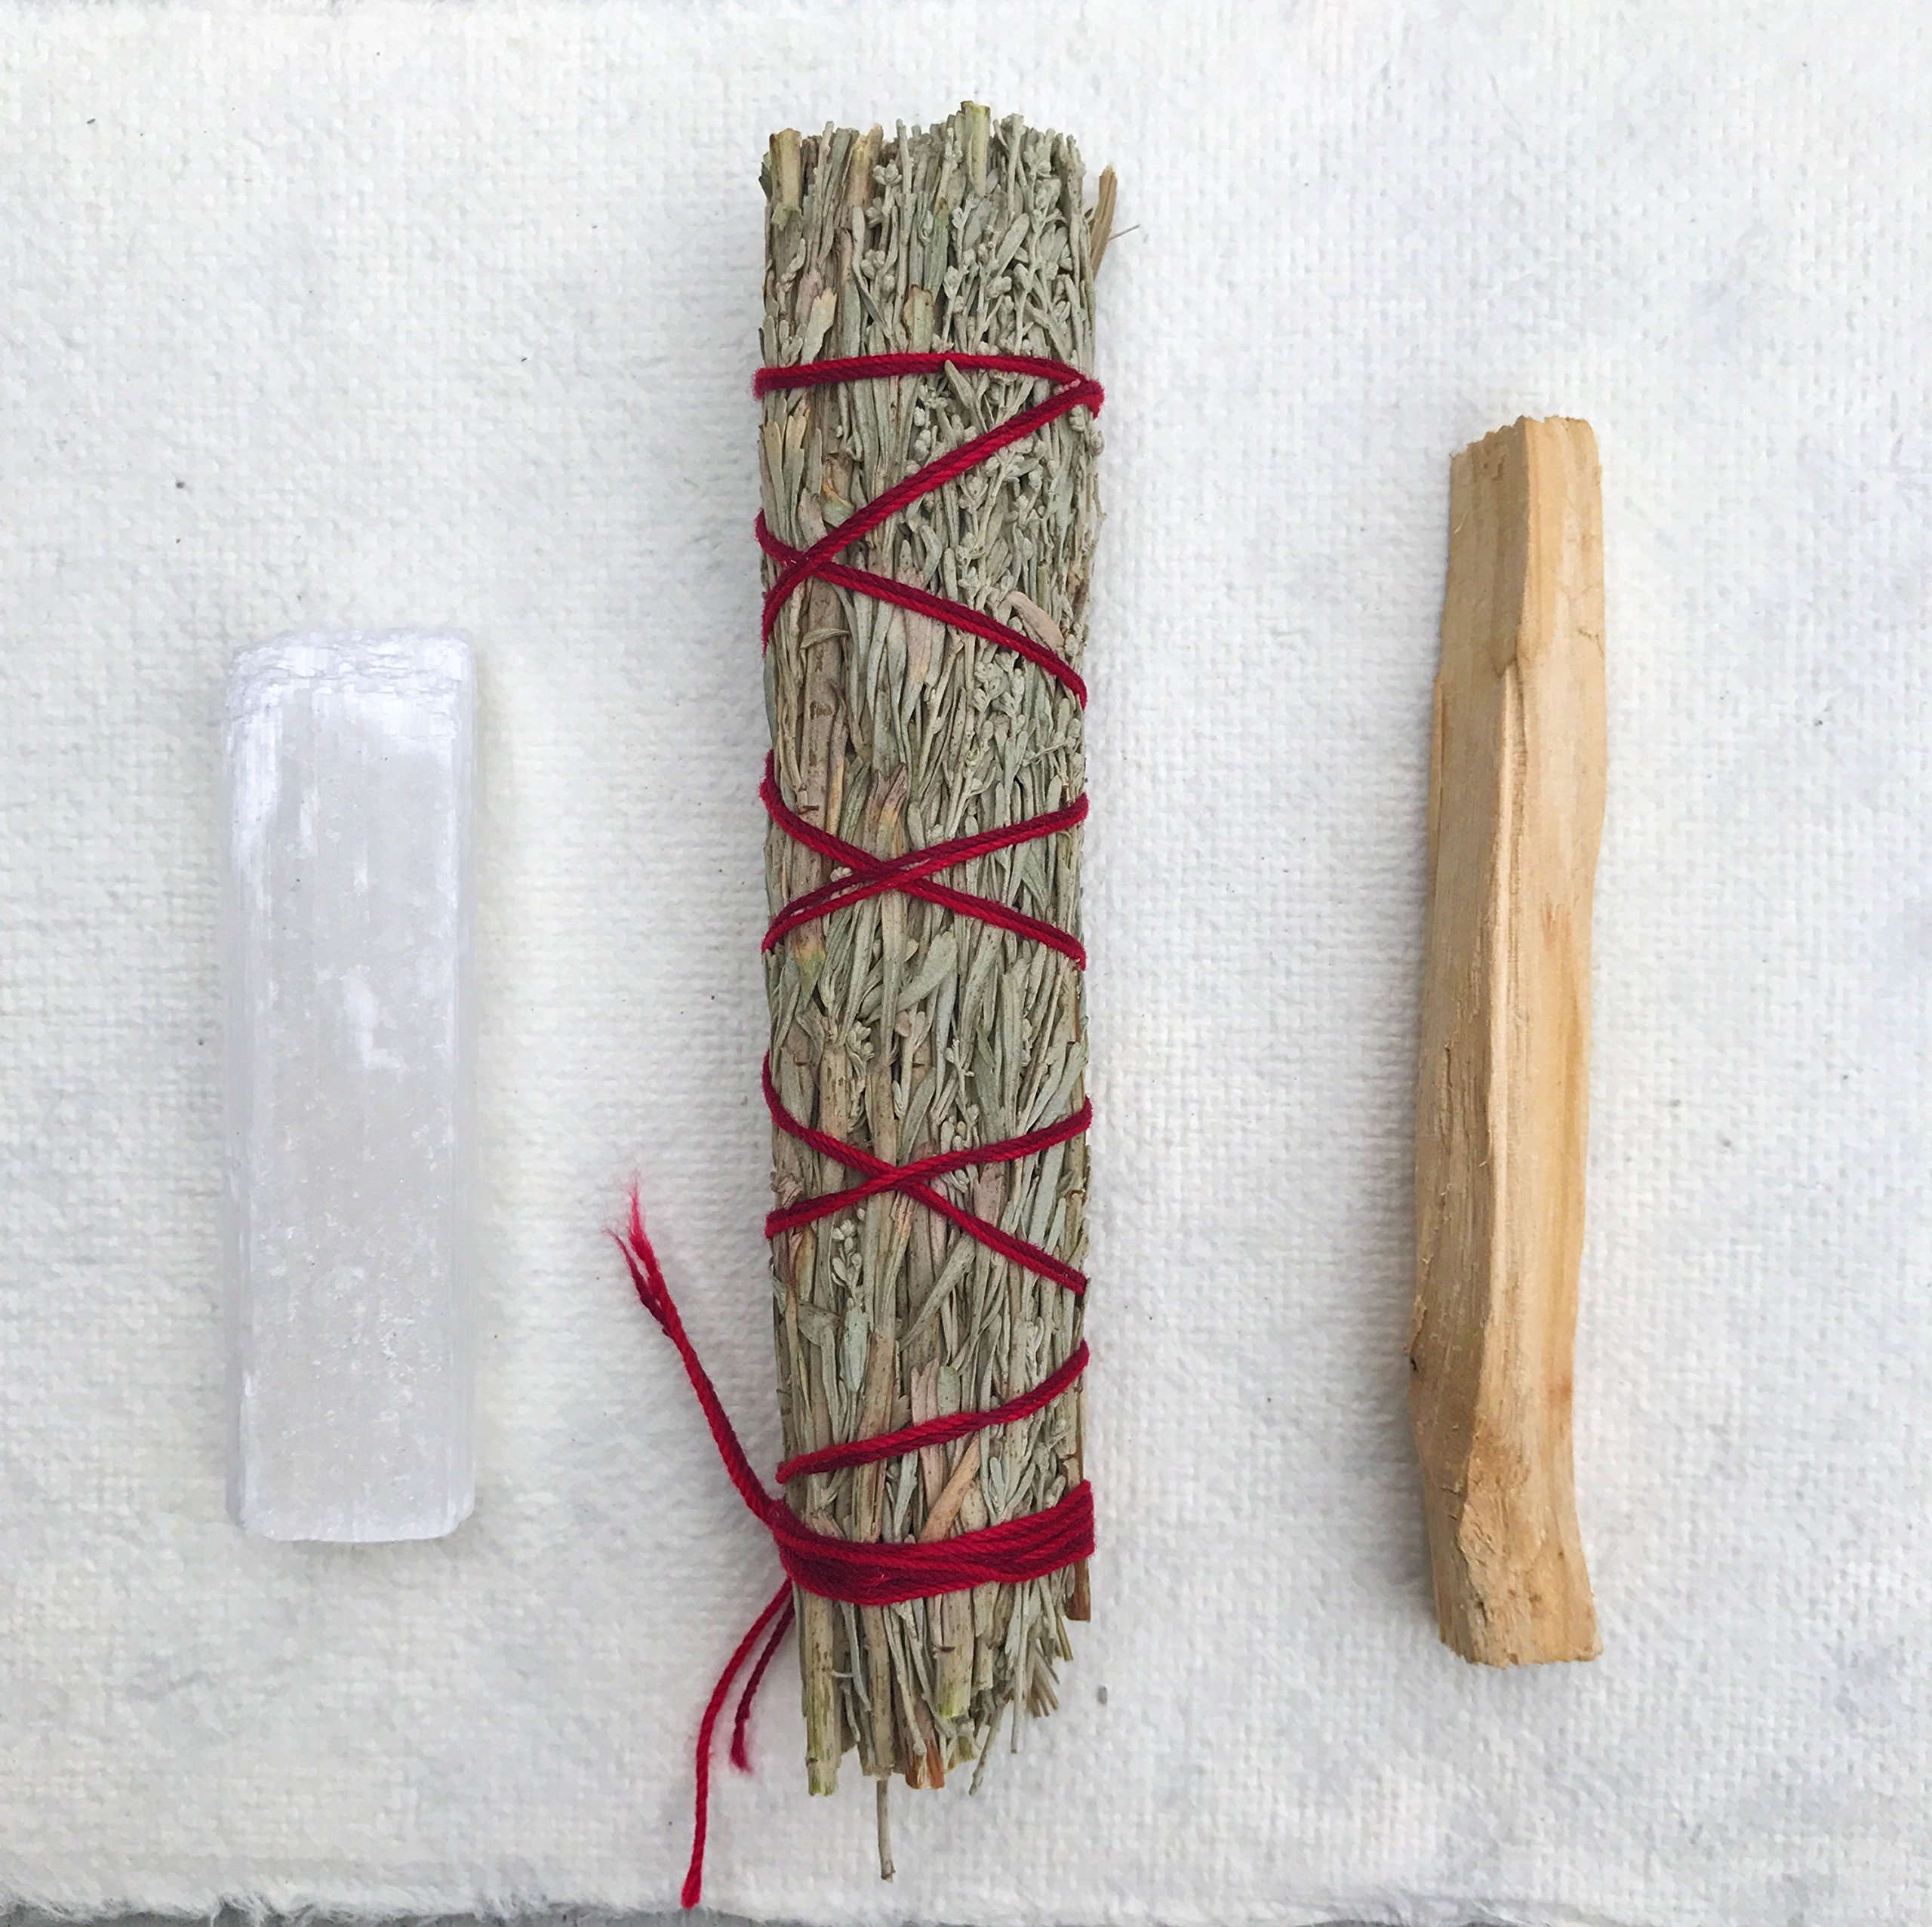 Sage Smudge Stick Kit - White Sage, Palo Santo, Mini Sage, Sage and Sweetgrass Smudging Sticks PLUS a Selenite Crystal & How to Guide for Cleansing your Home - Hand tied in California (Selenite) by Maha Living (Image #3)